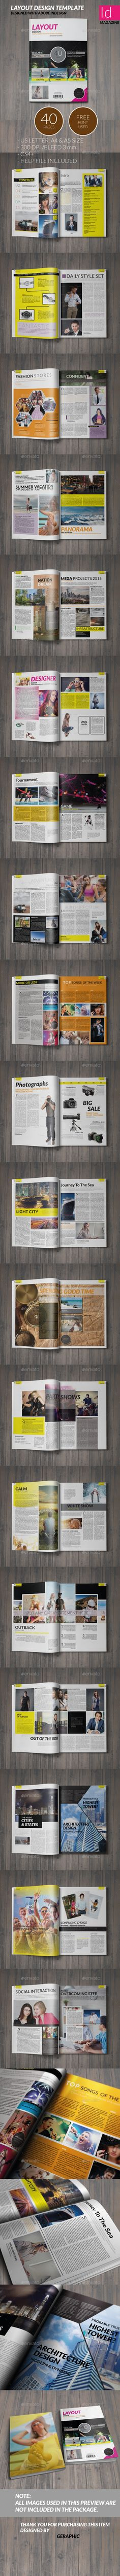 Magazine Template - 40 Pages - Magazines Print Templates